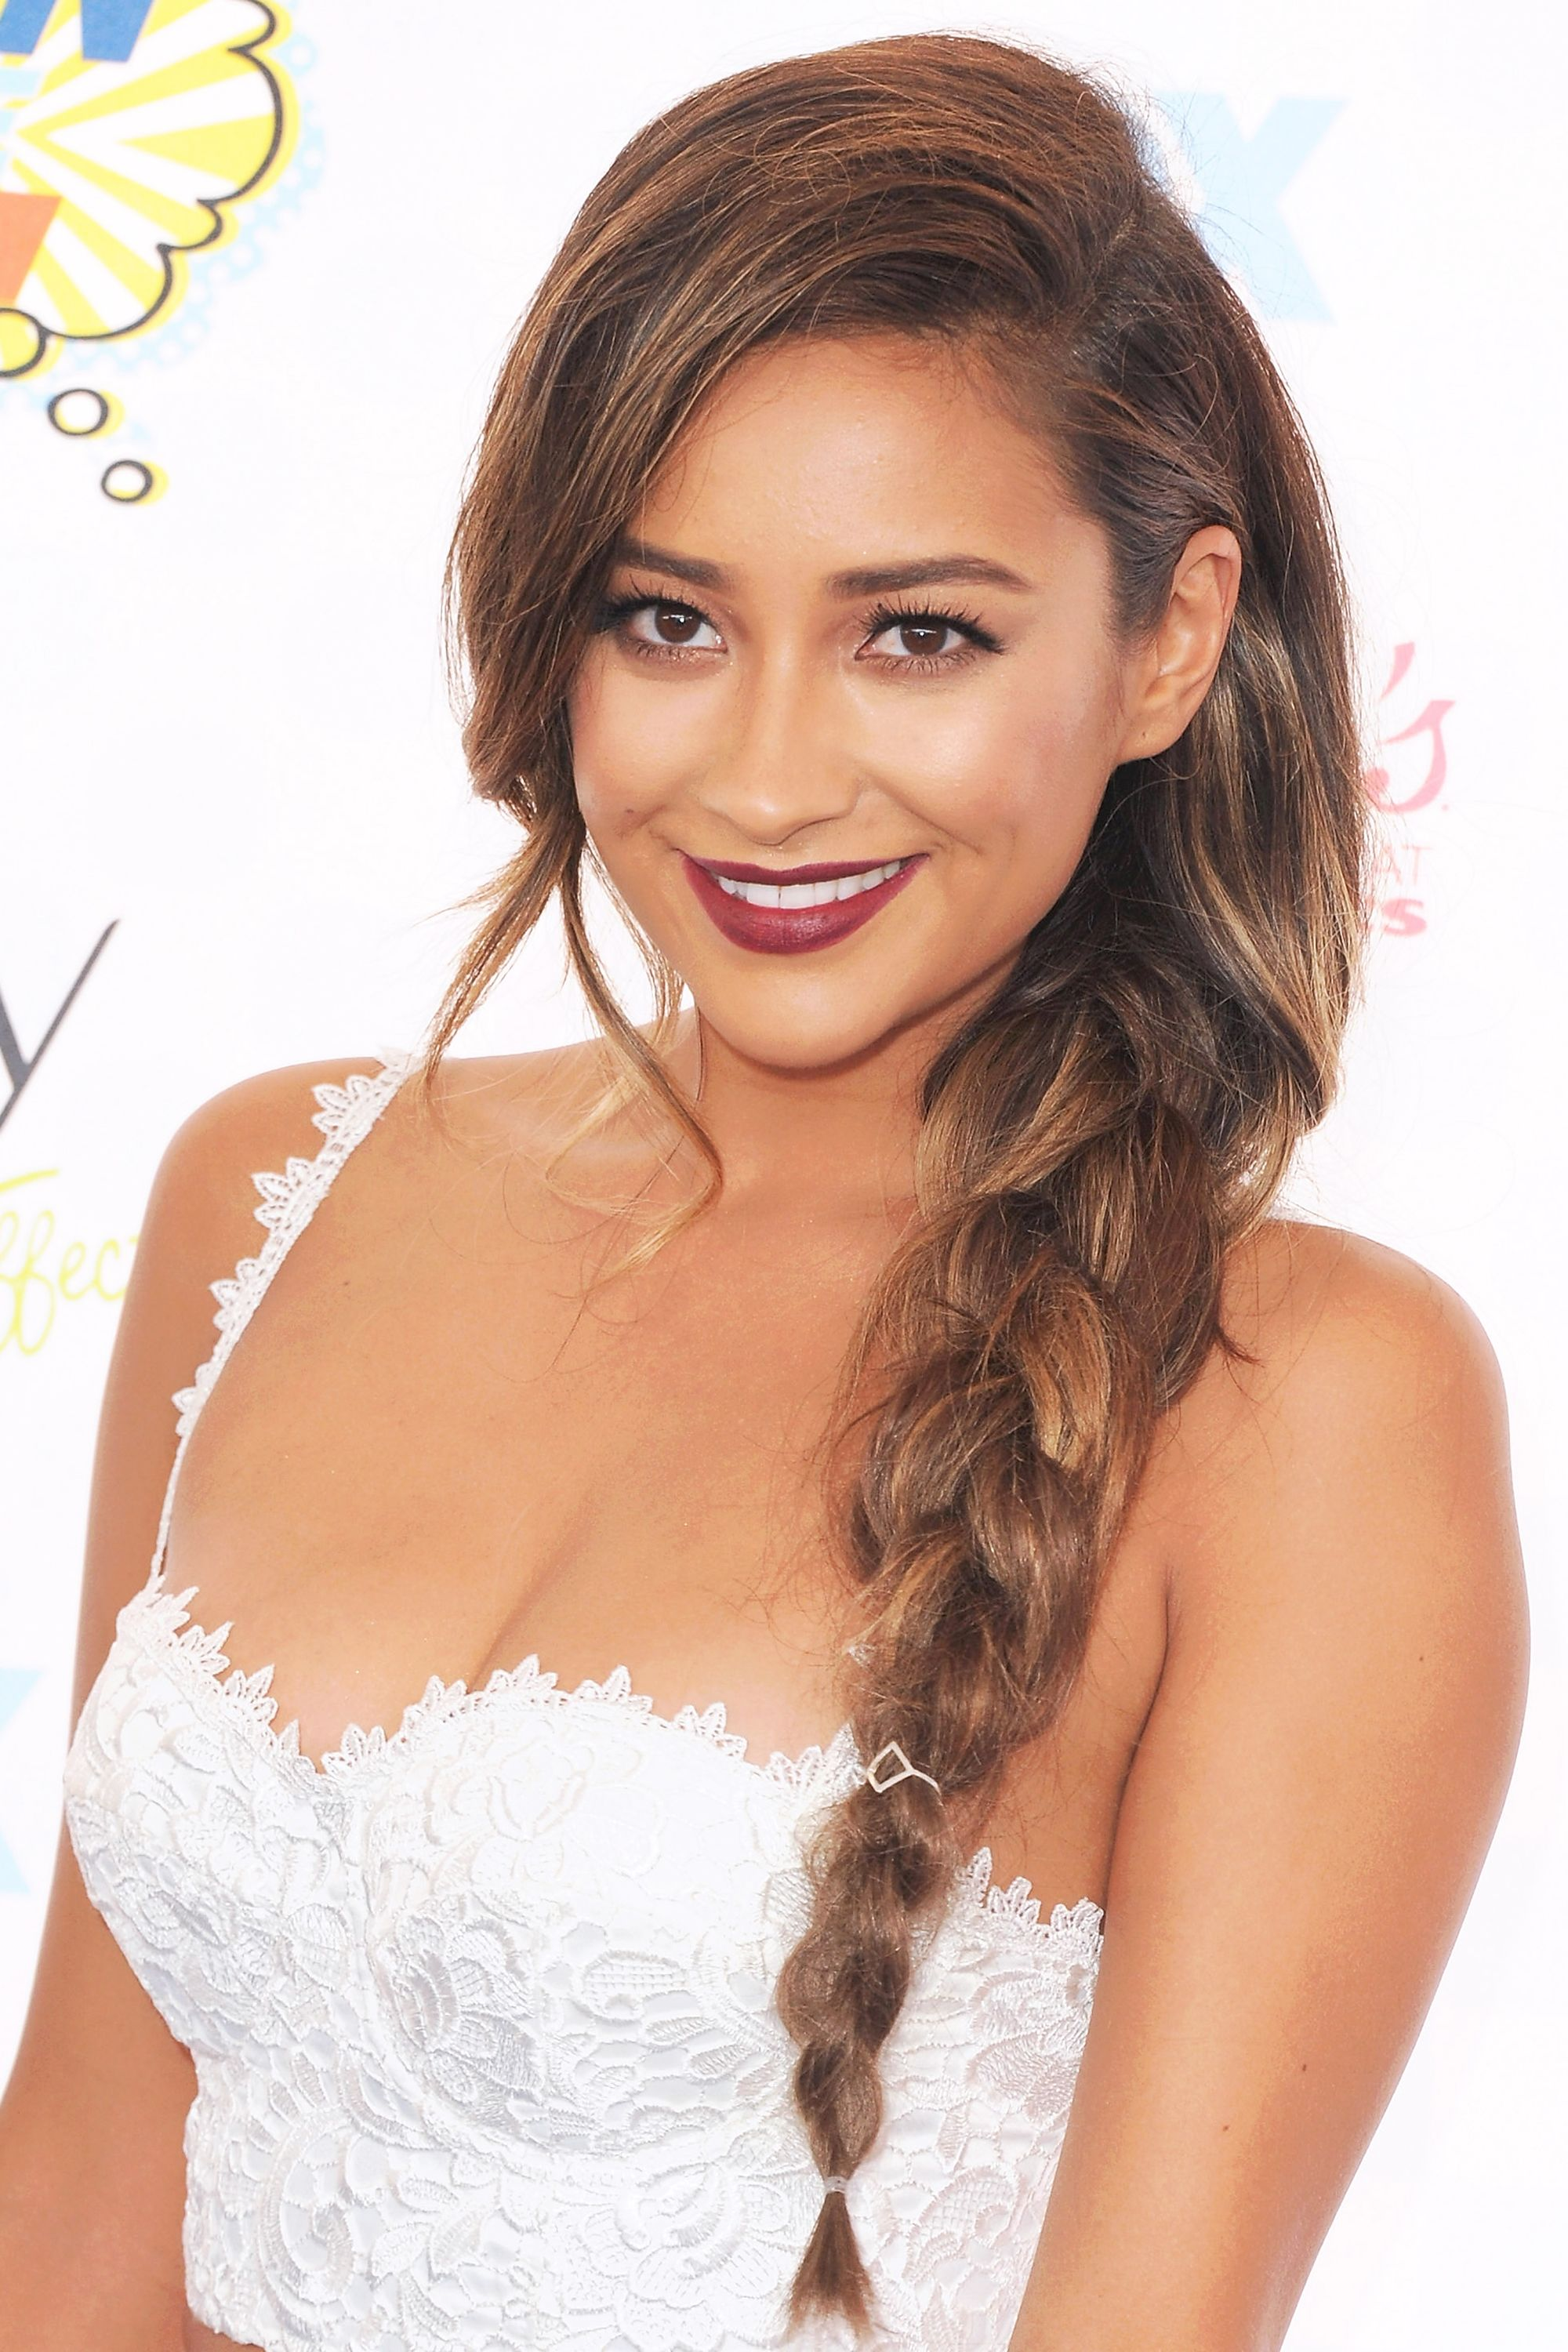 Shay Mitchell Mitchell creates the perfect pretty little side braid that shows off the actress' beautiful face. A tuck behind the ear also adds a sophisticated touch.